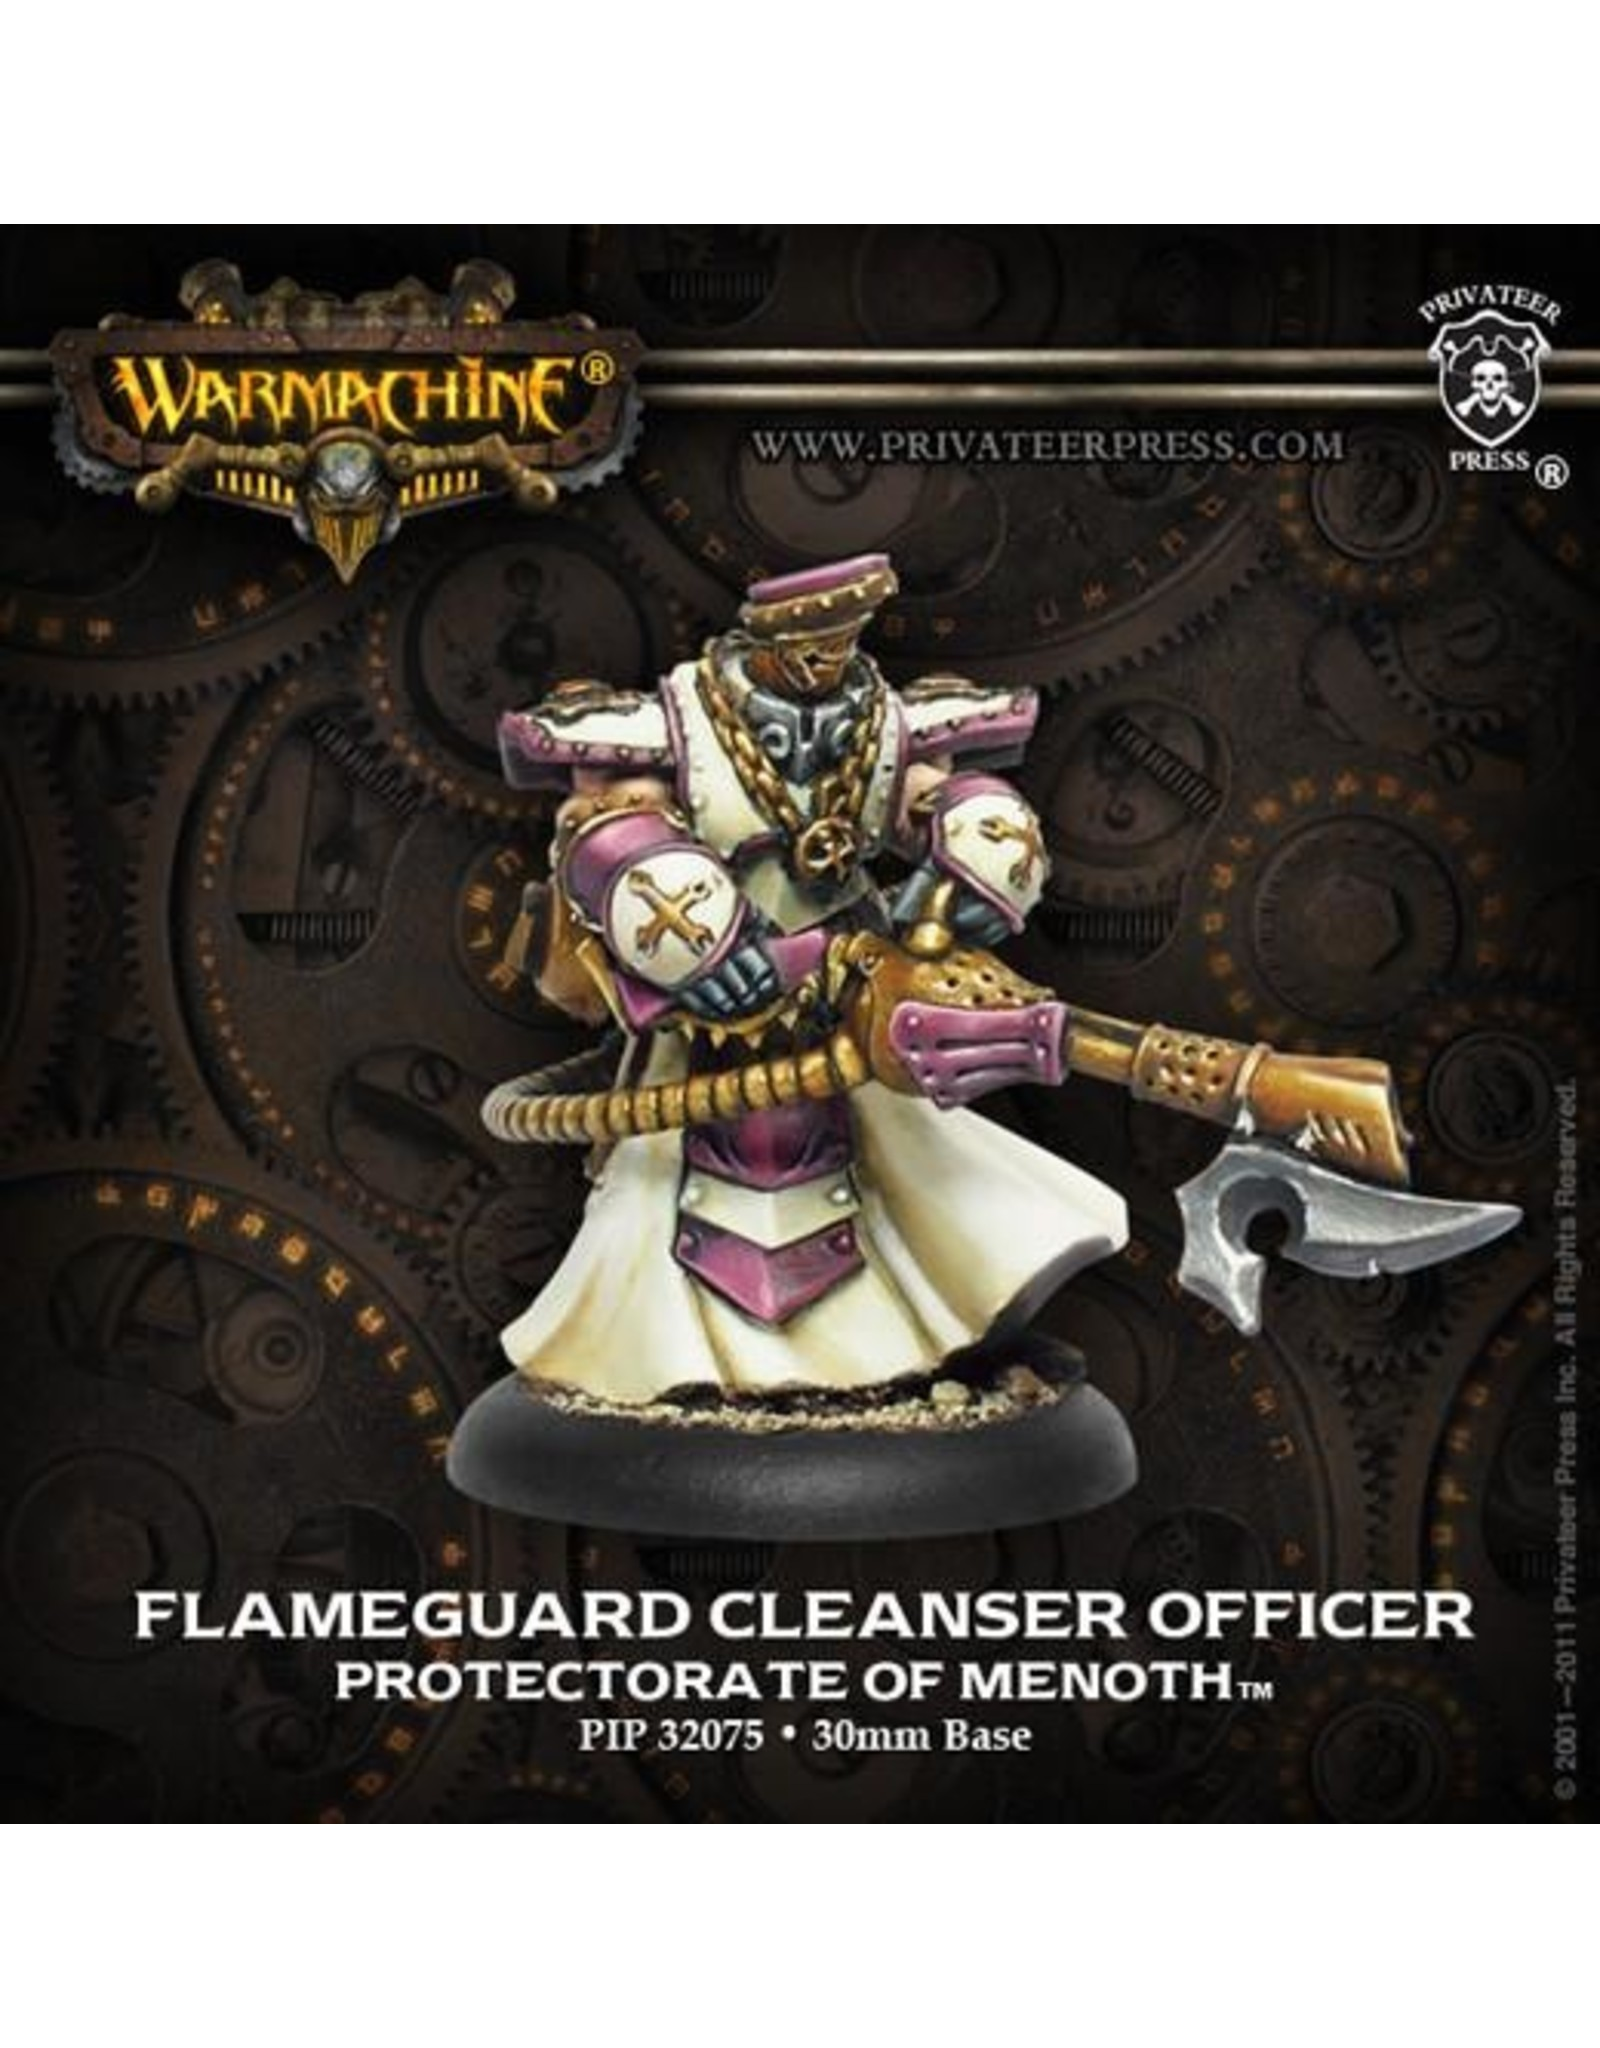 Warmachine: The Protectorate of Menoth Flameguard Cleanser Officer (White Metal)